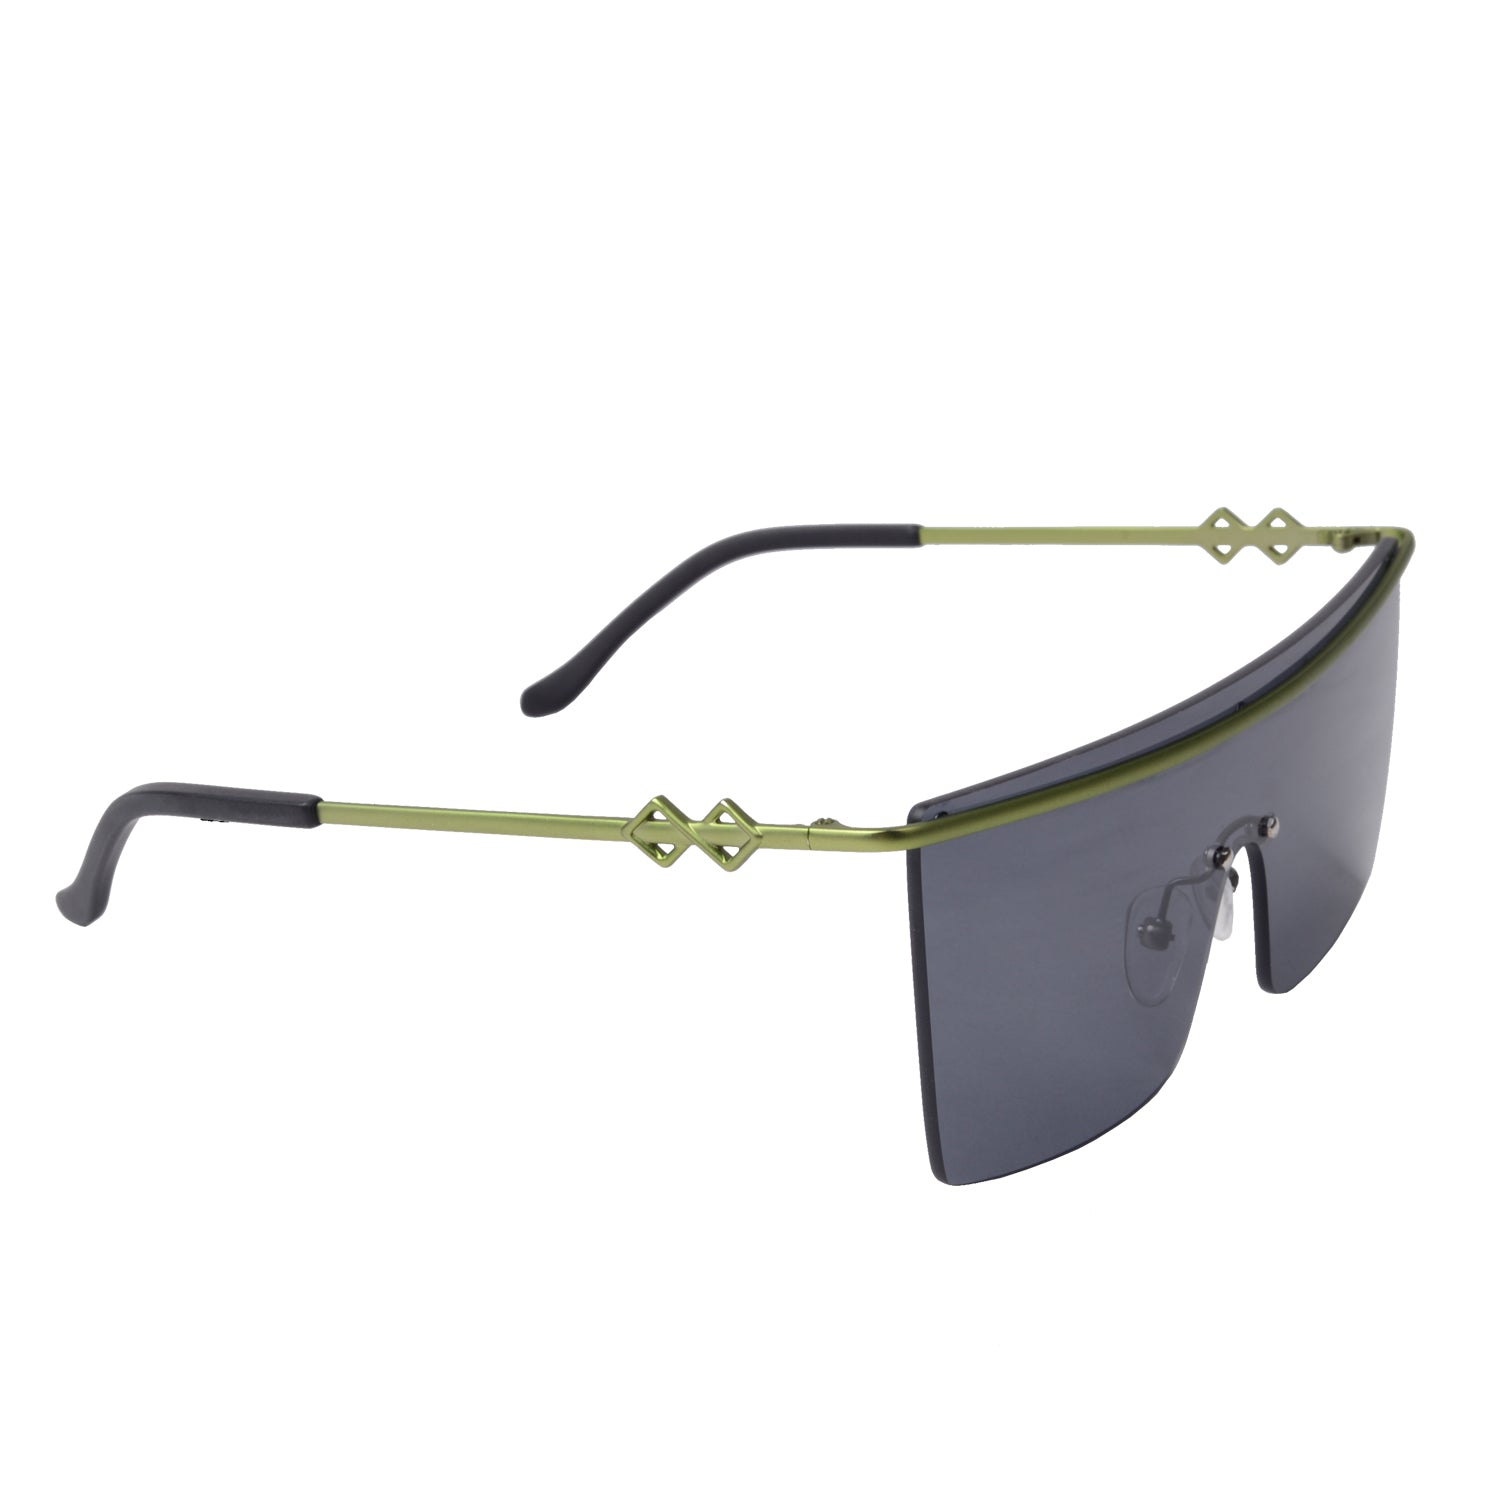 Frameless square sunglasses with black lenses and green frames | Metal | Skylar | Women's sunglasses | Karen Wazen Eyewear